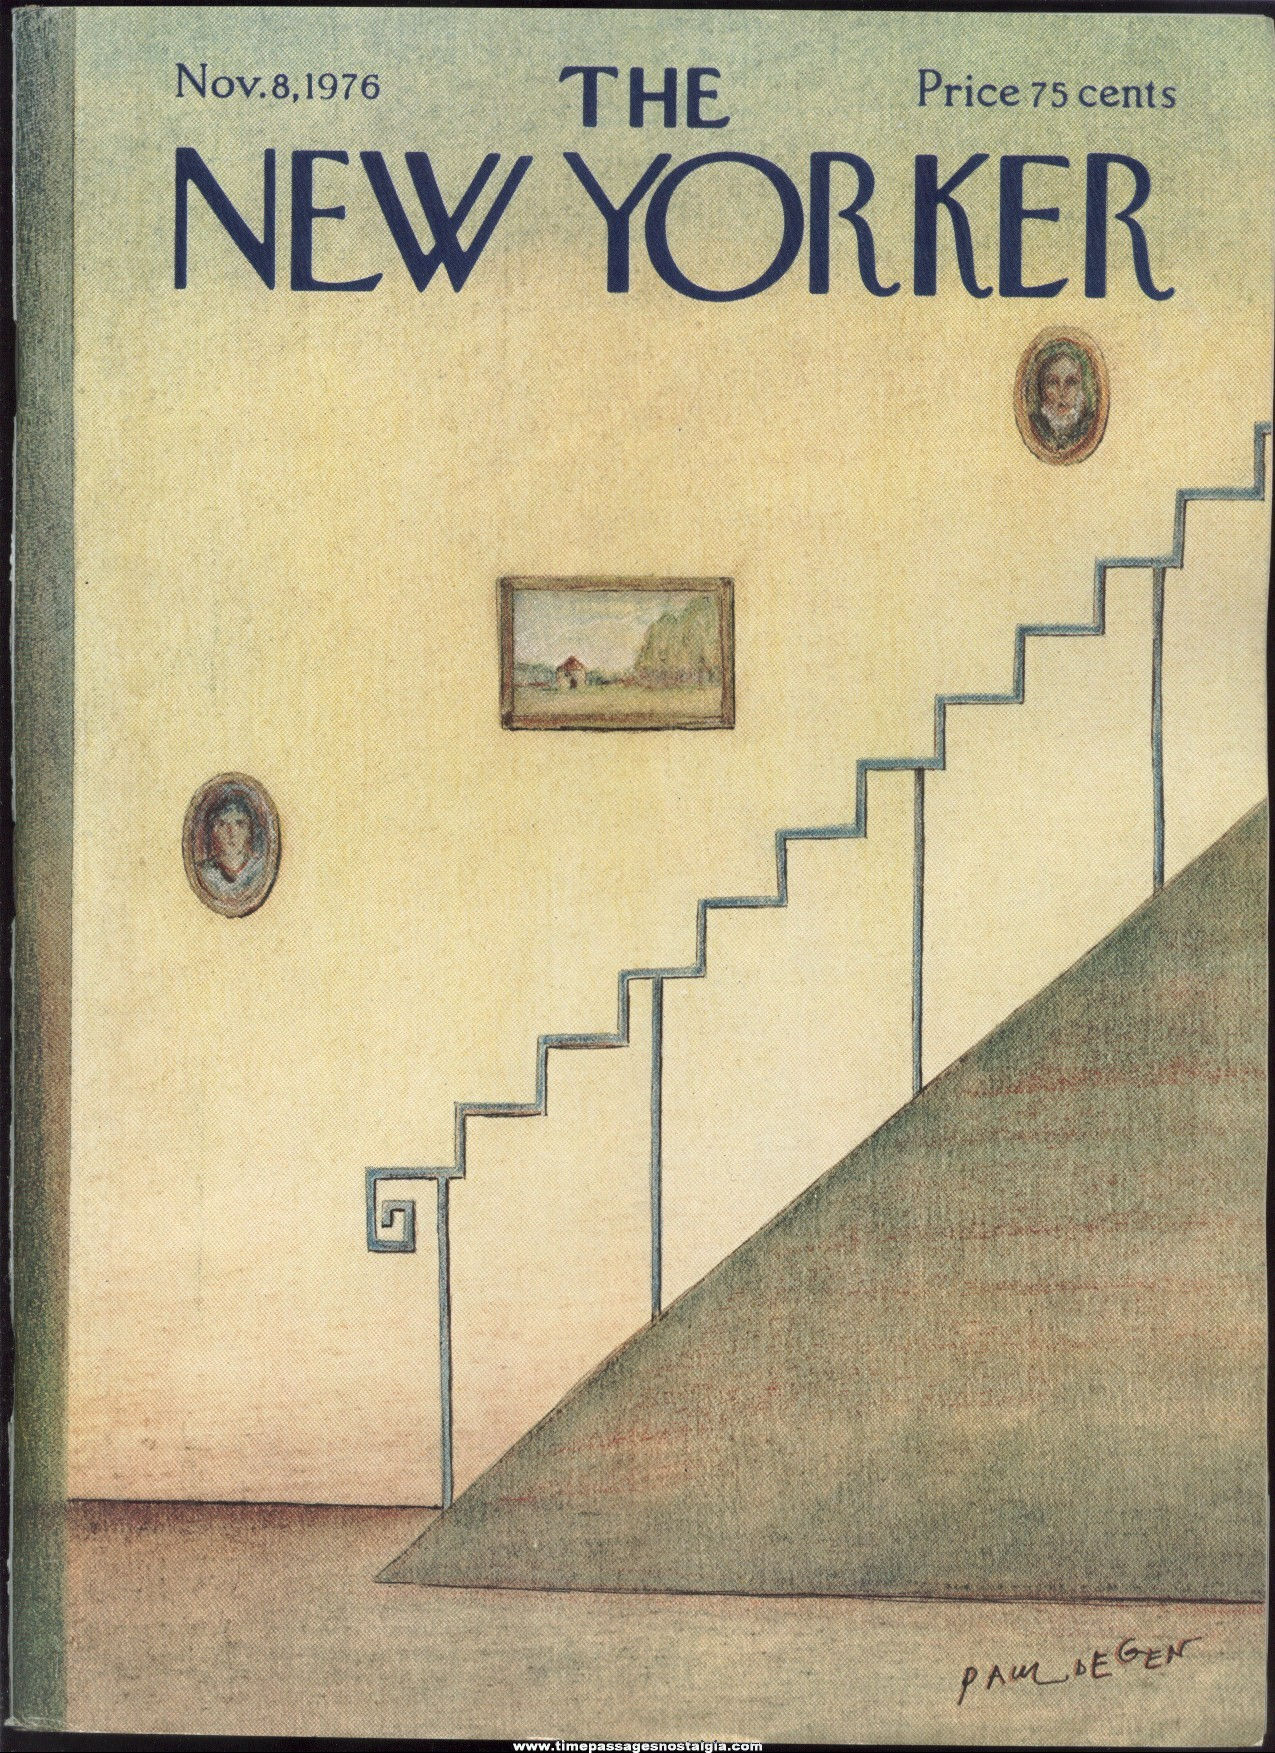 New Yorker Magazine - November 8, 1976 - Cover by Paul Degen